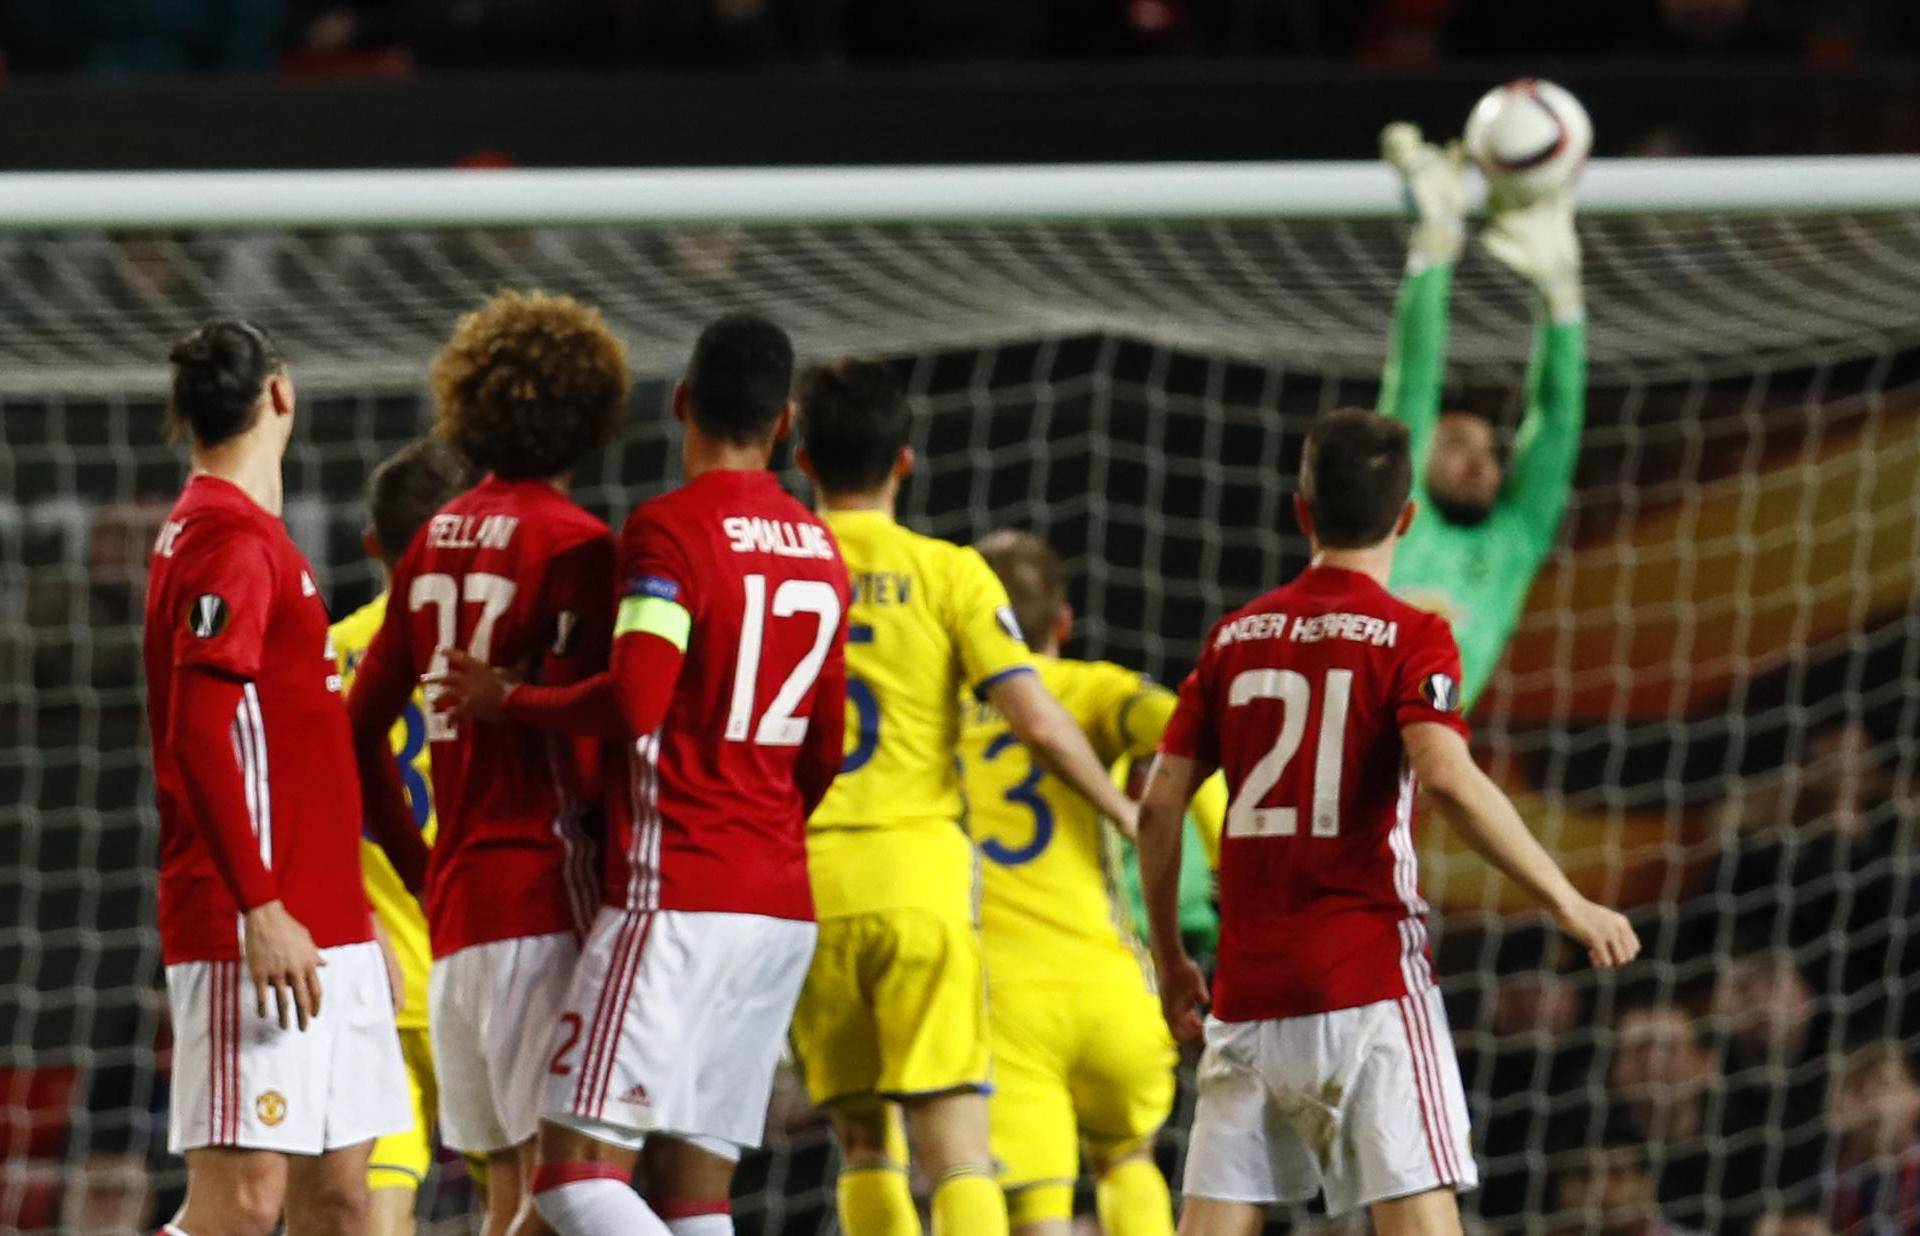 Manchester United's Sergio Romero saves a free kick from FC Rostov's Christian Noboa